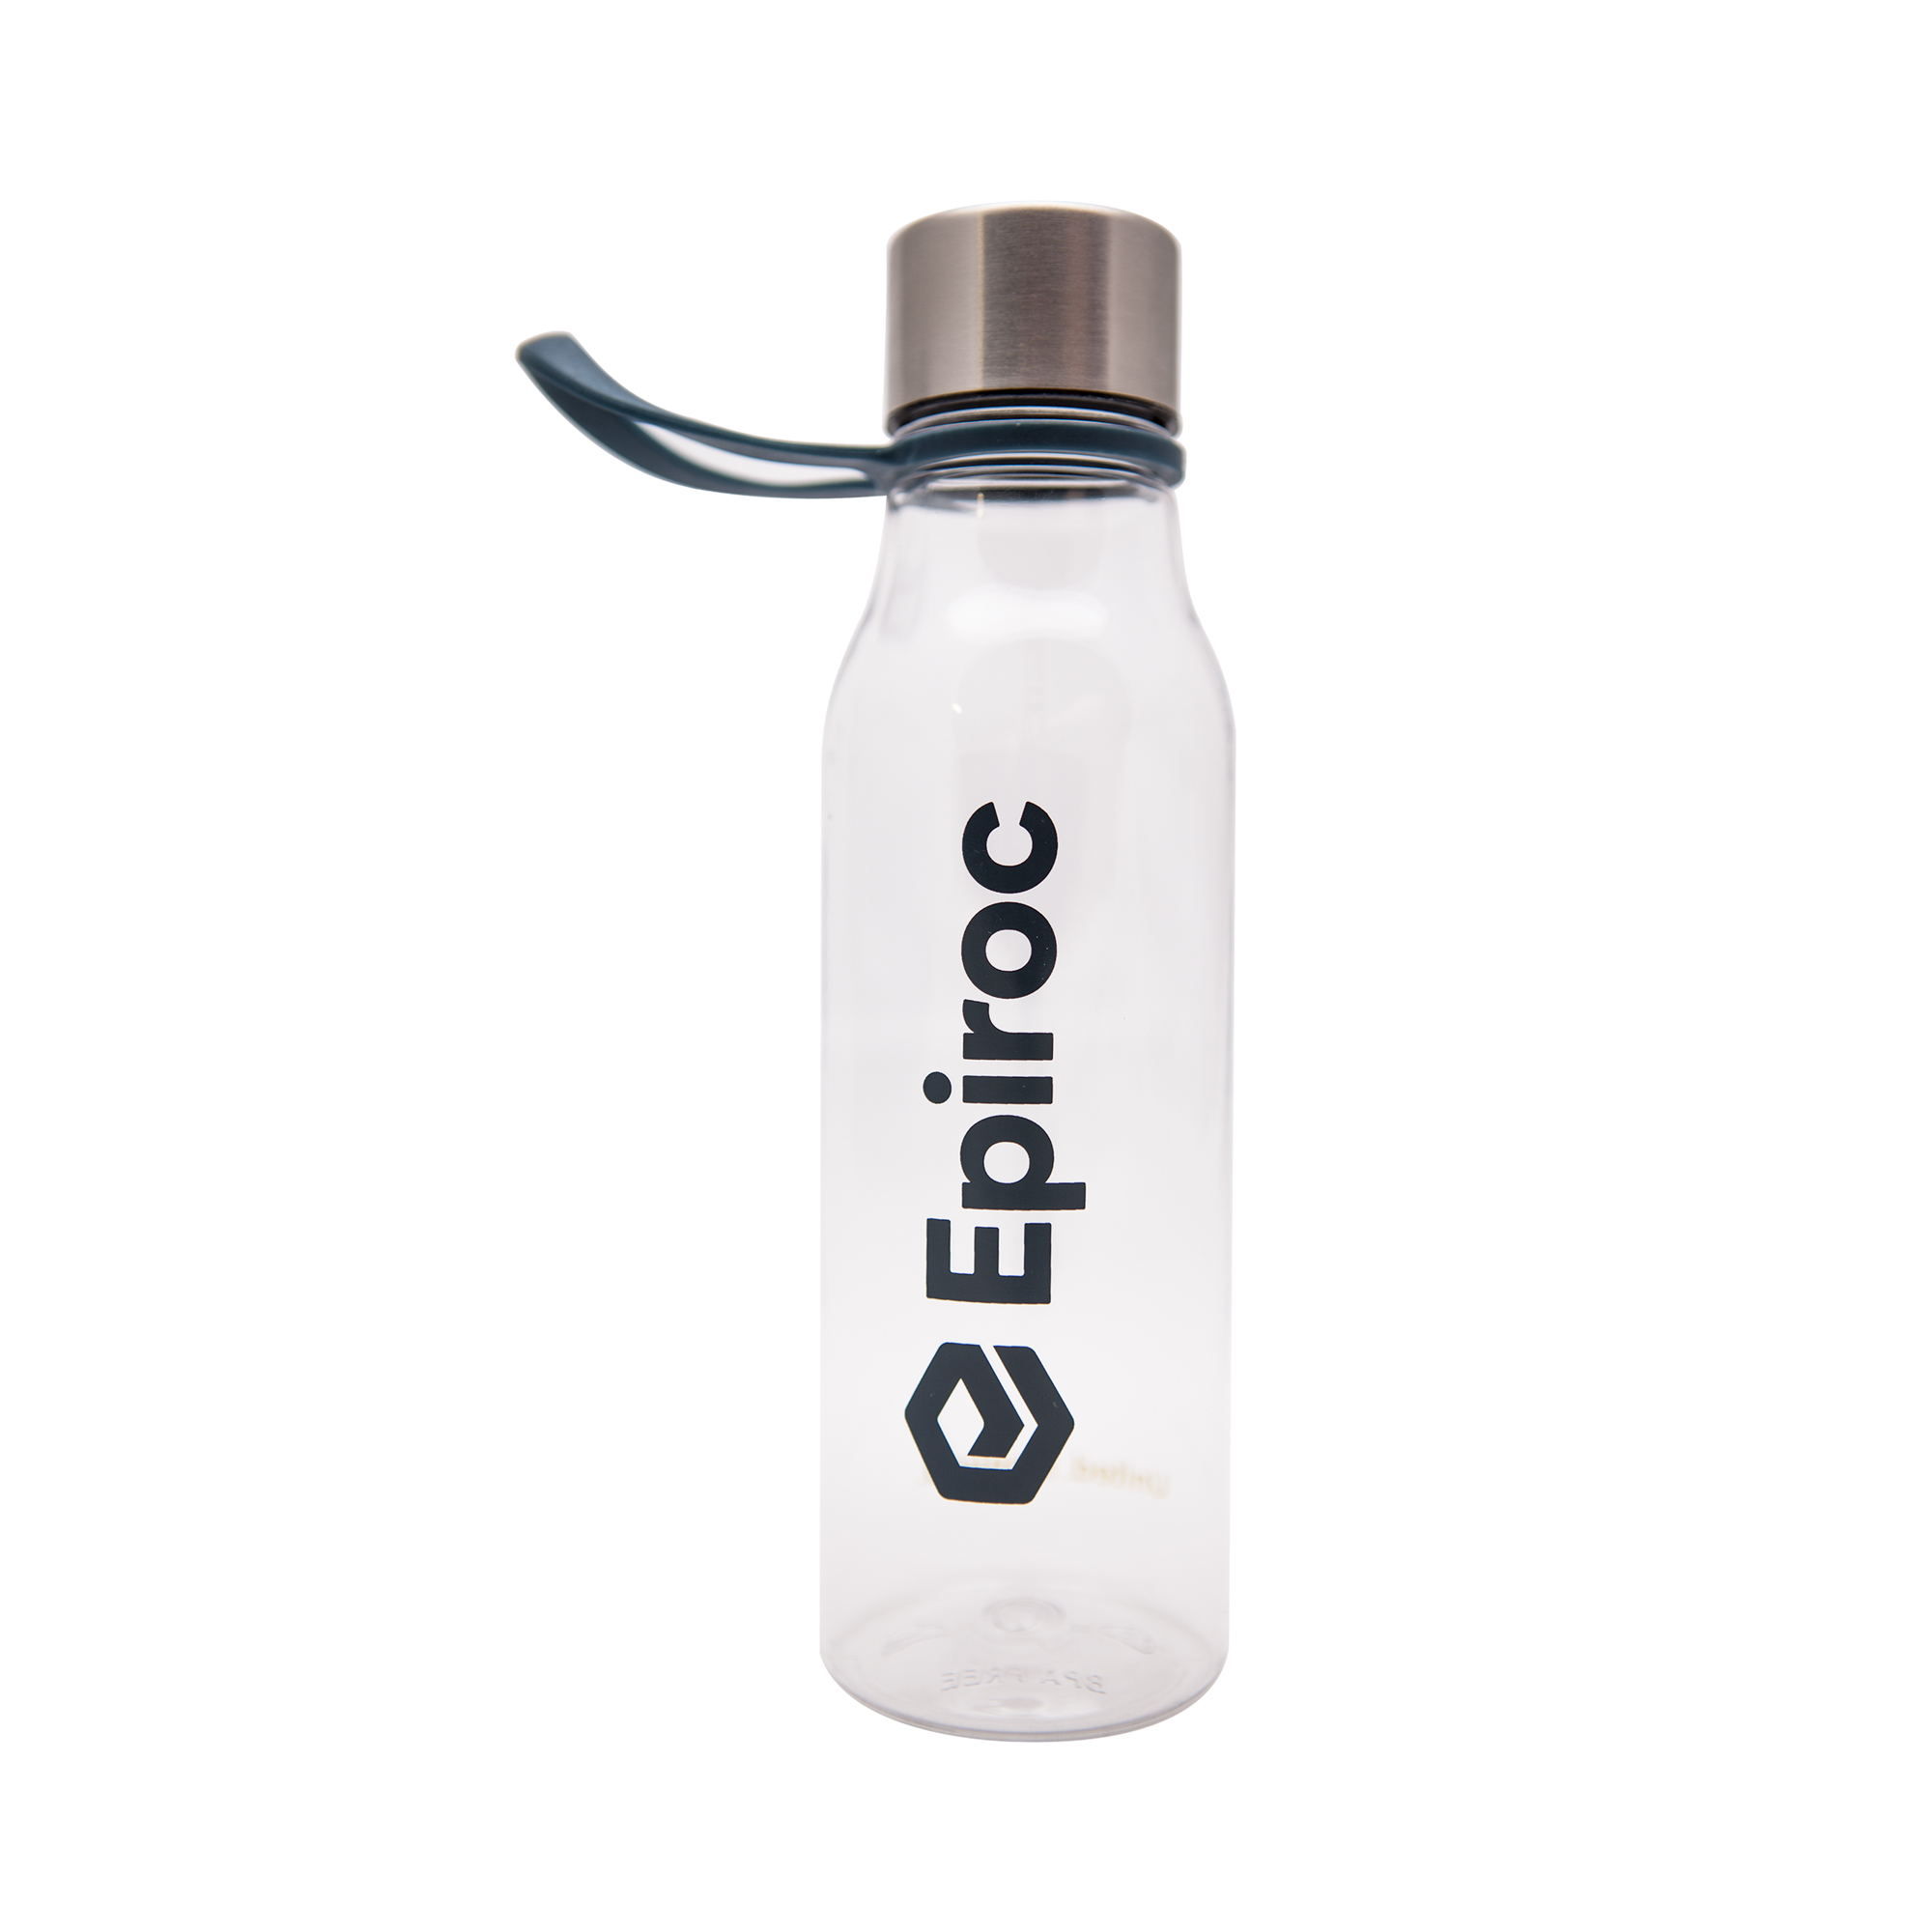 Water bottle in BPA-free tritan. The loop makes it easy to hang or carry the bottle.  Perfect for the office desk or on the go.